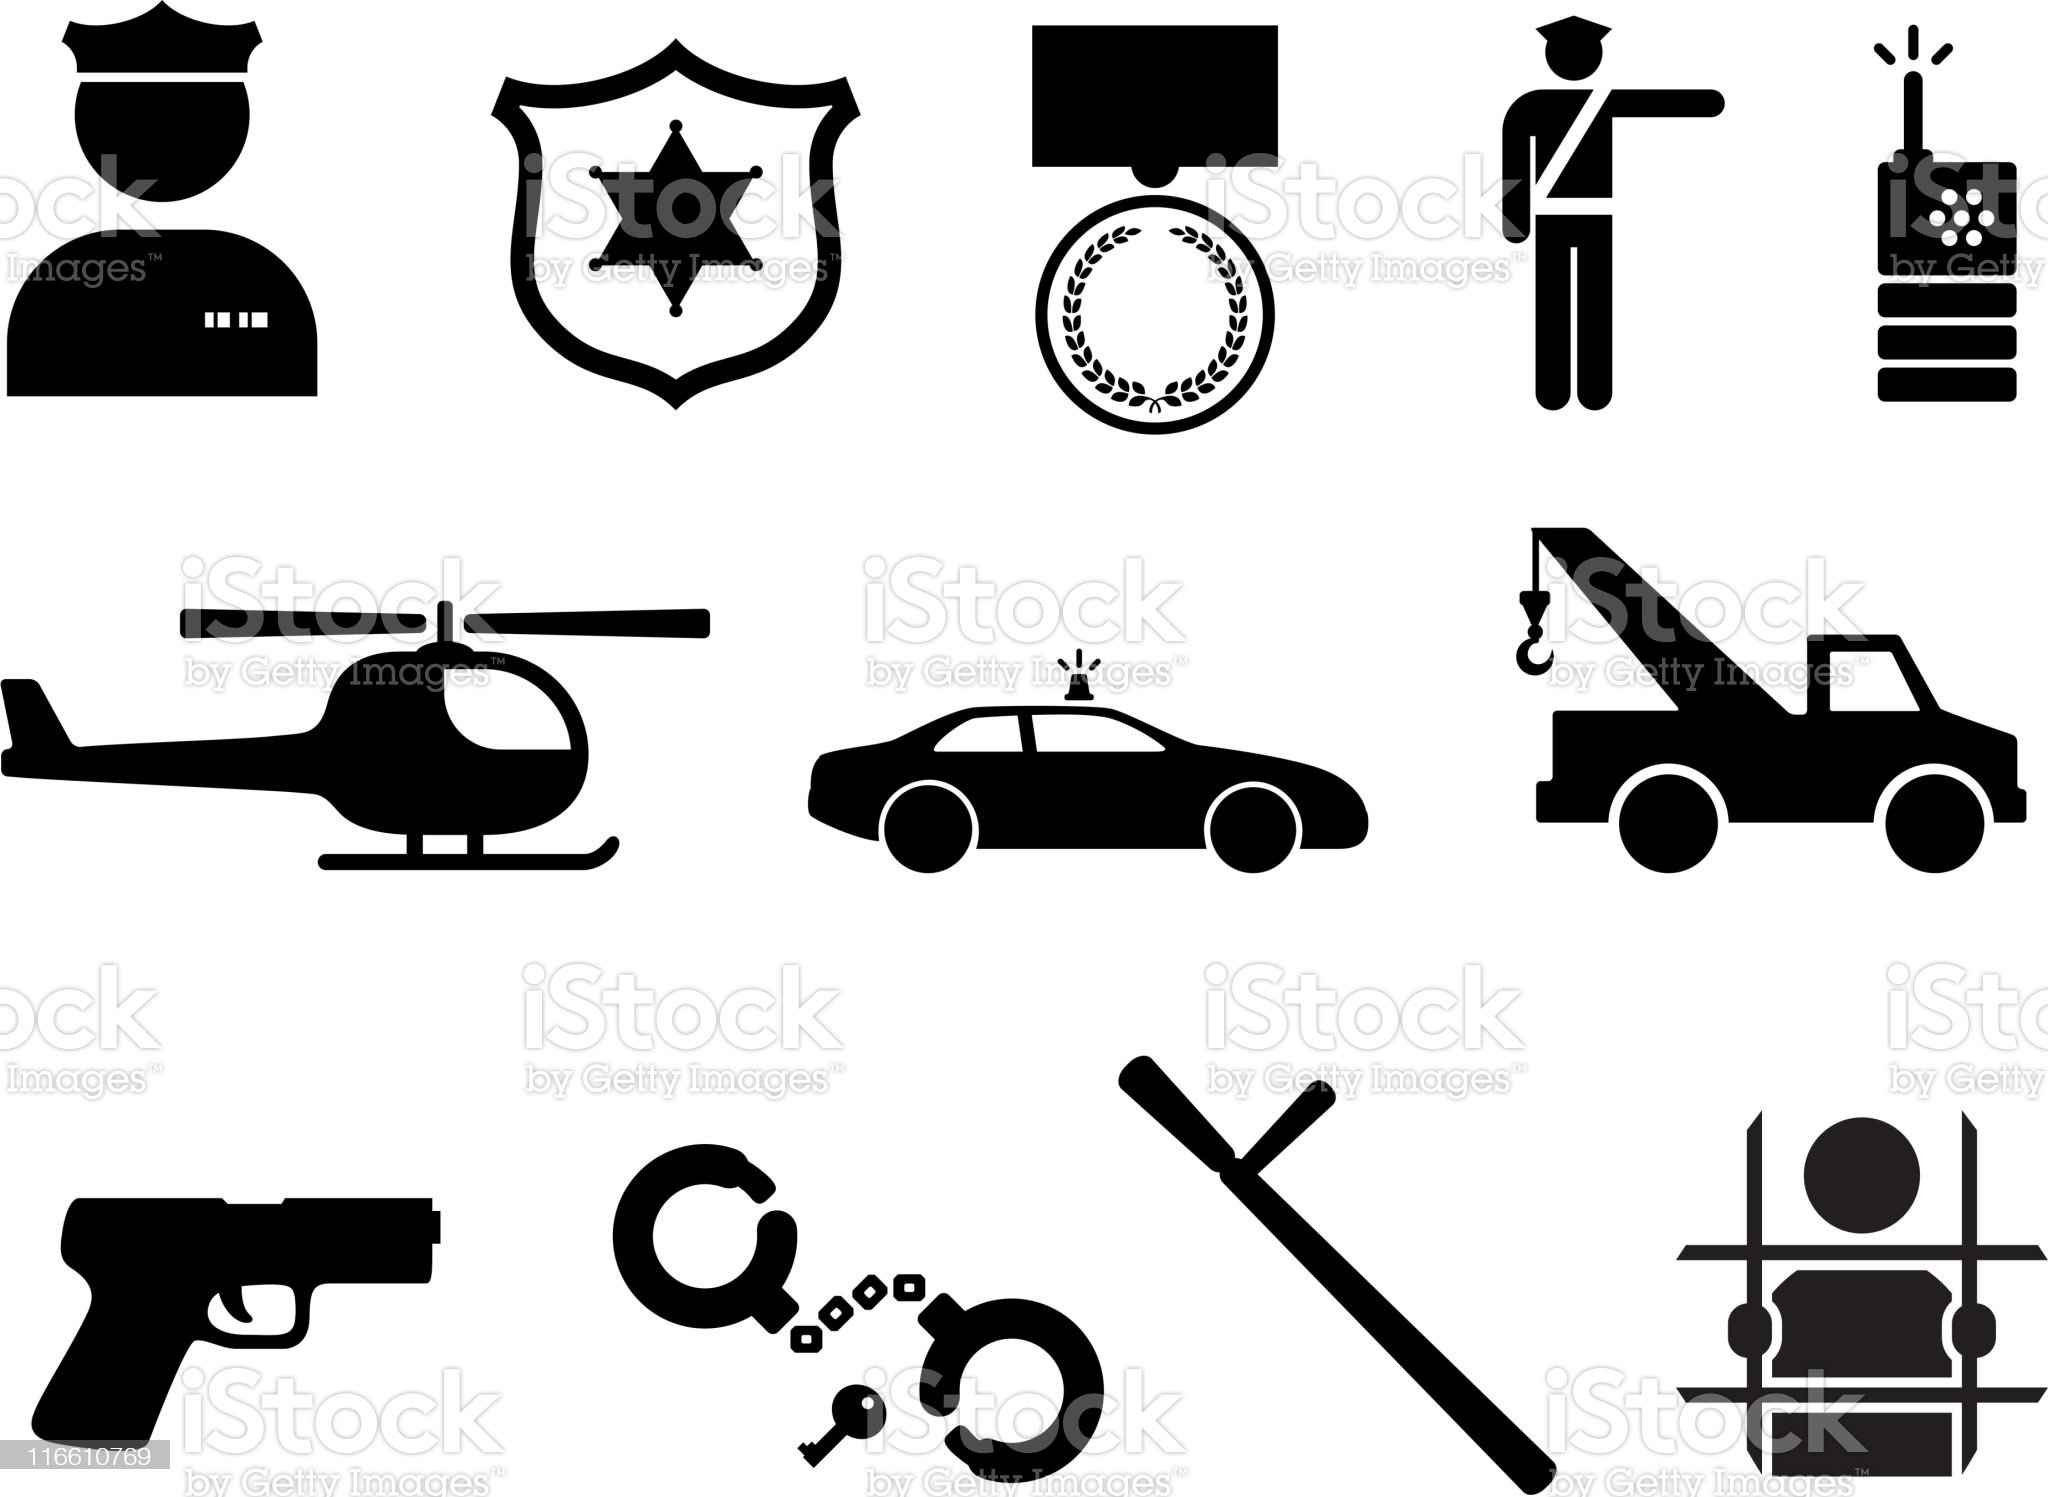 Police and Law Enforcement royalty free vector icon set royalty-free stock vector art